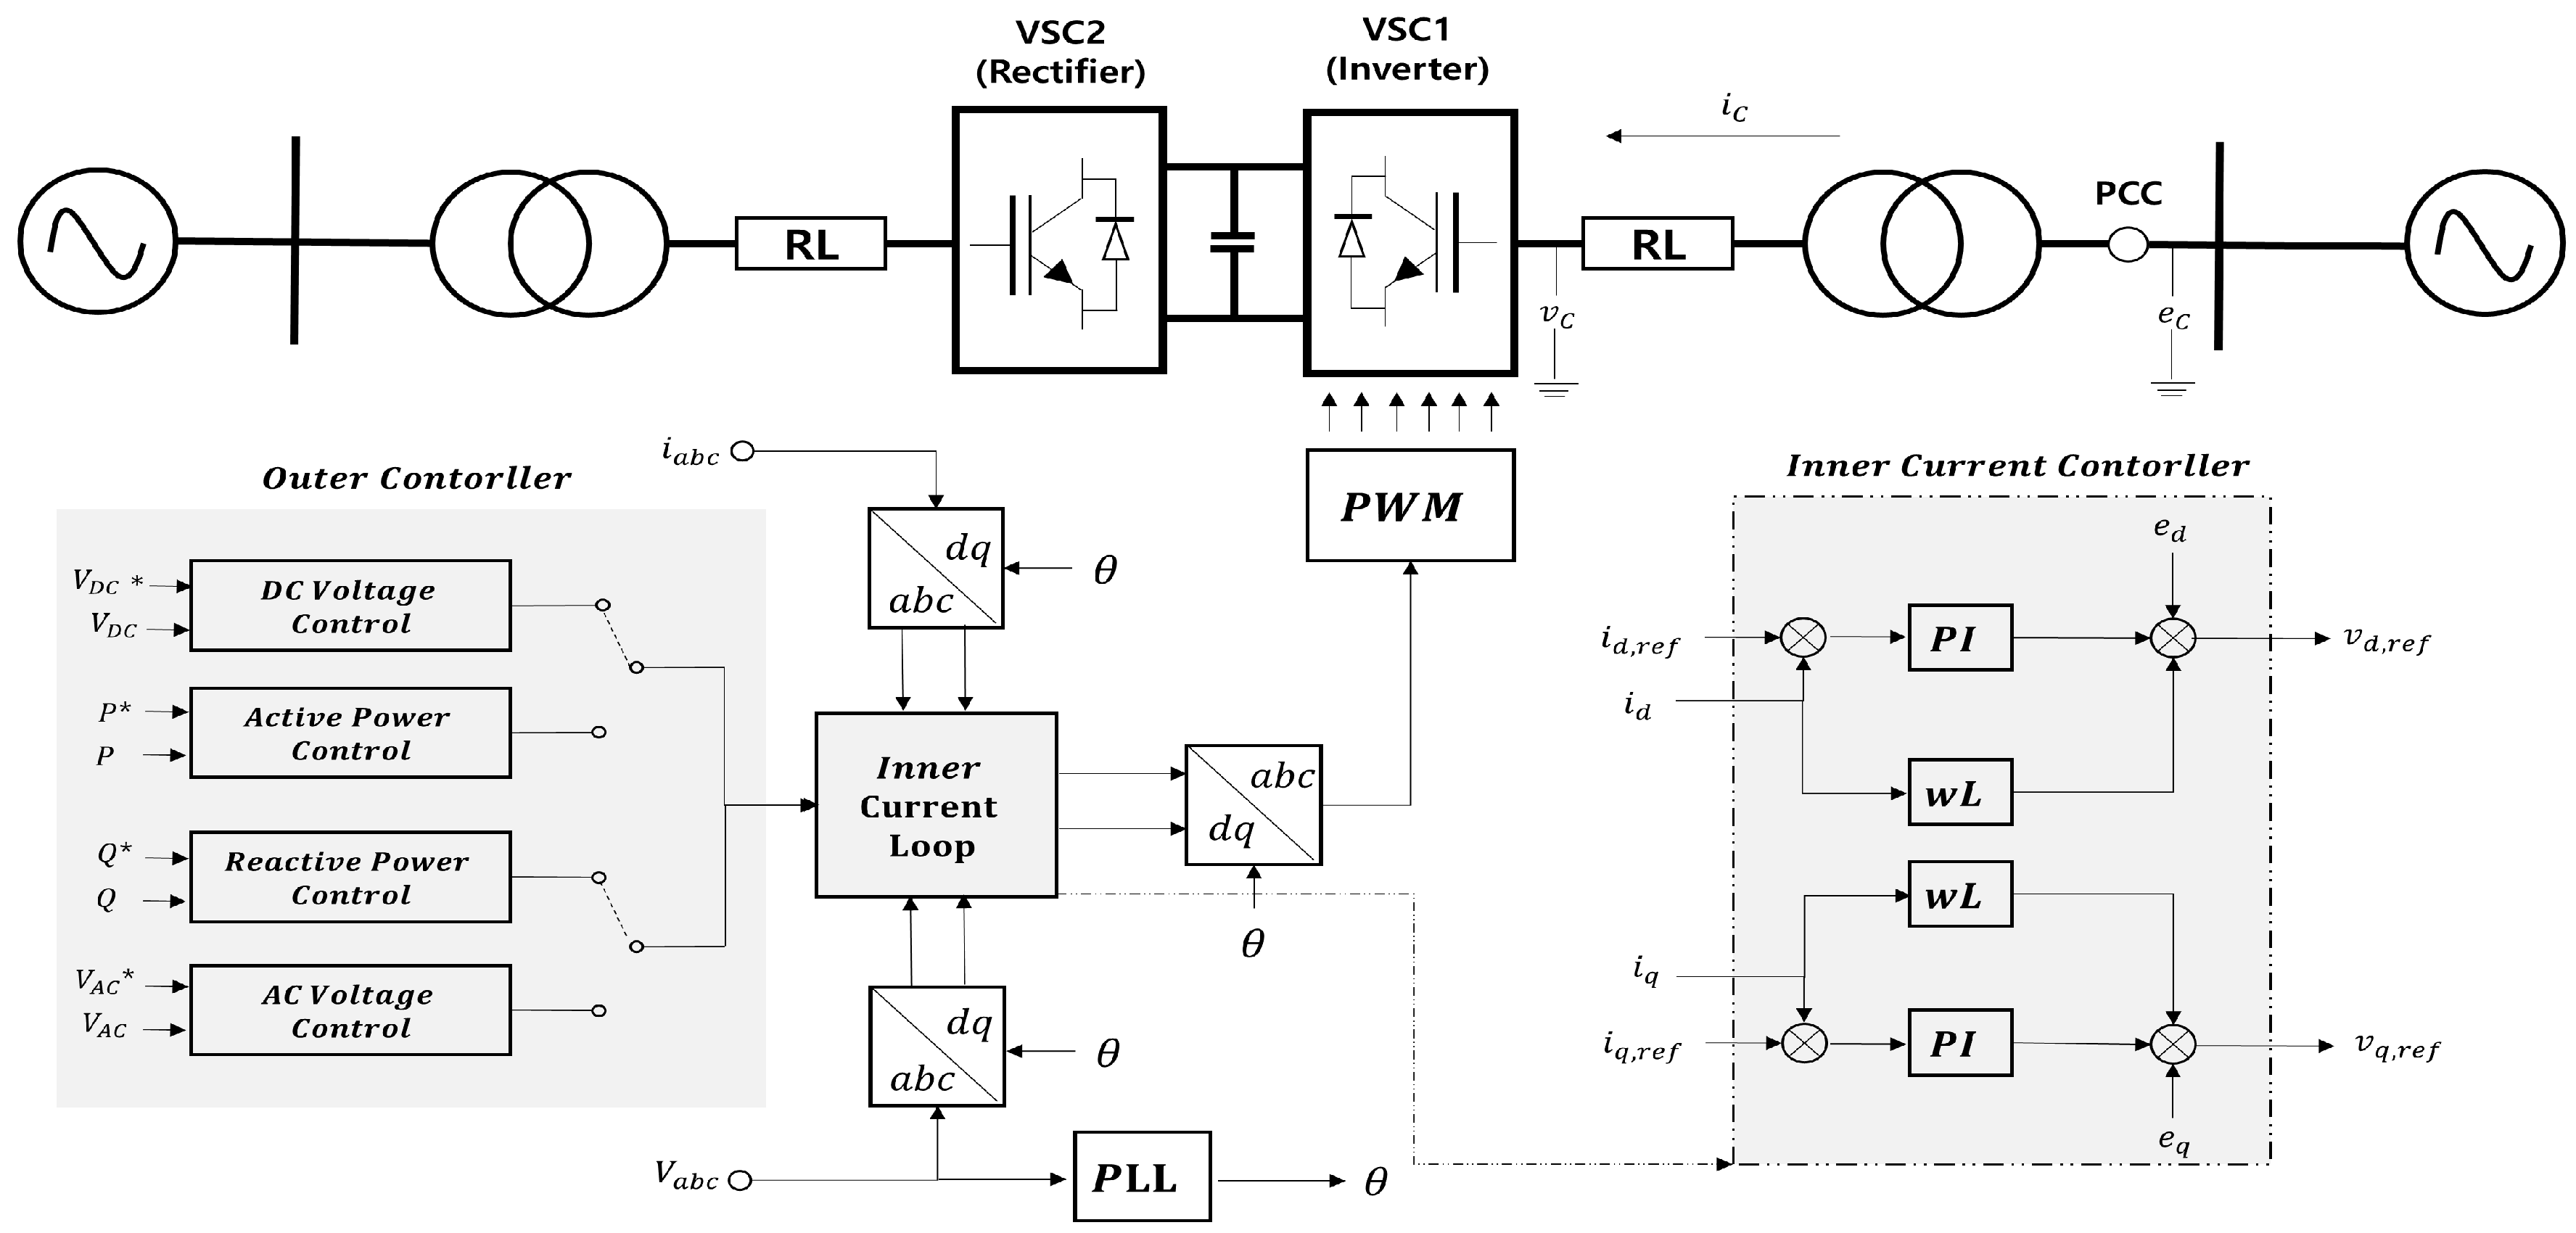 inertia emulation control strategy for vsc hvdc Offshore wind integration through high voltage direct 43 control strategies for inertia emulation challenges in the integration of owpps through vsc-hvdc.